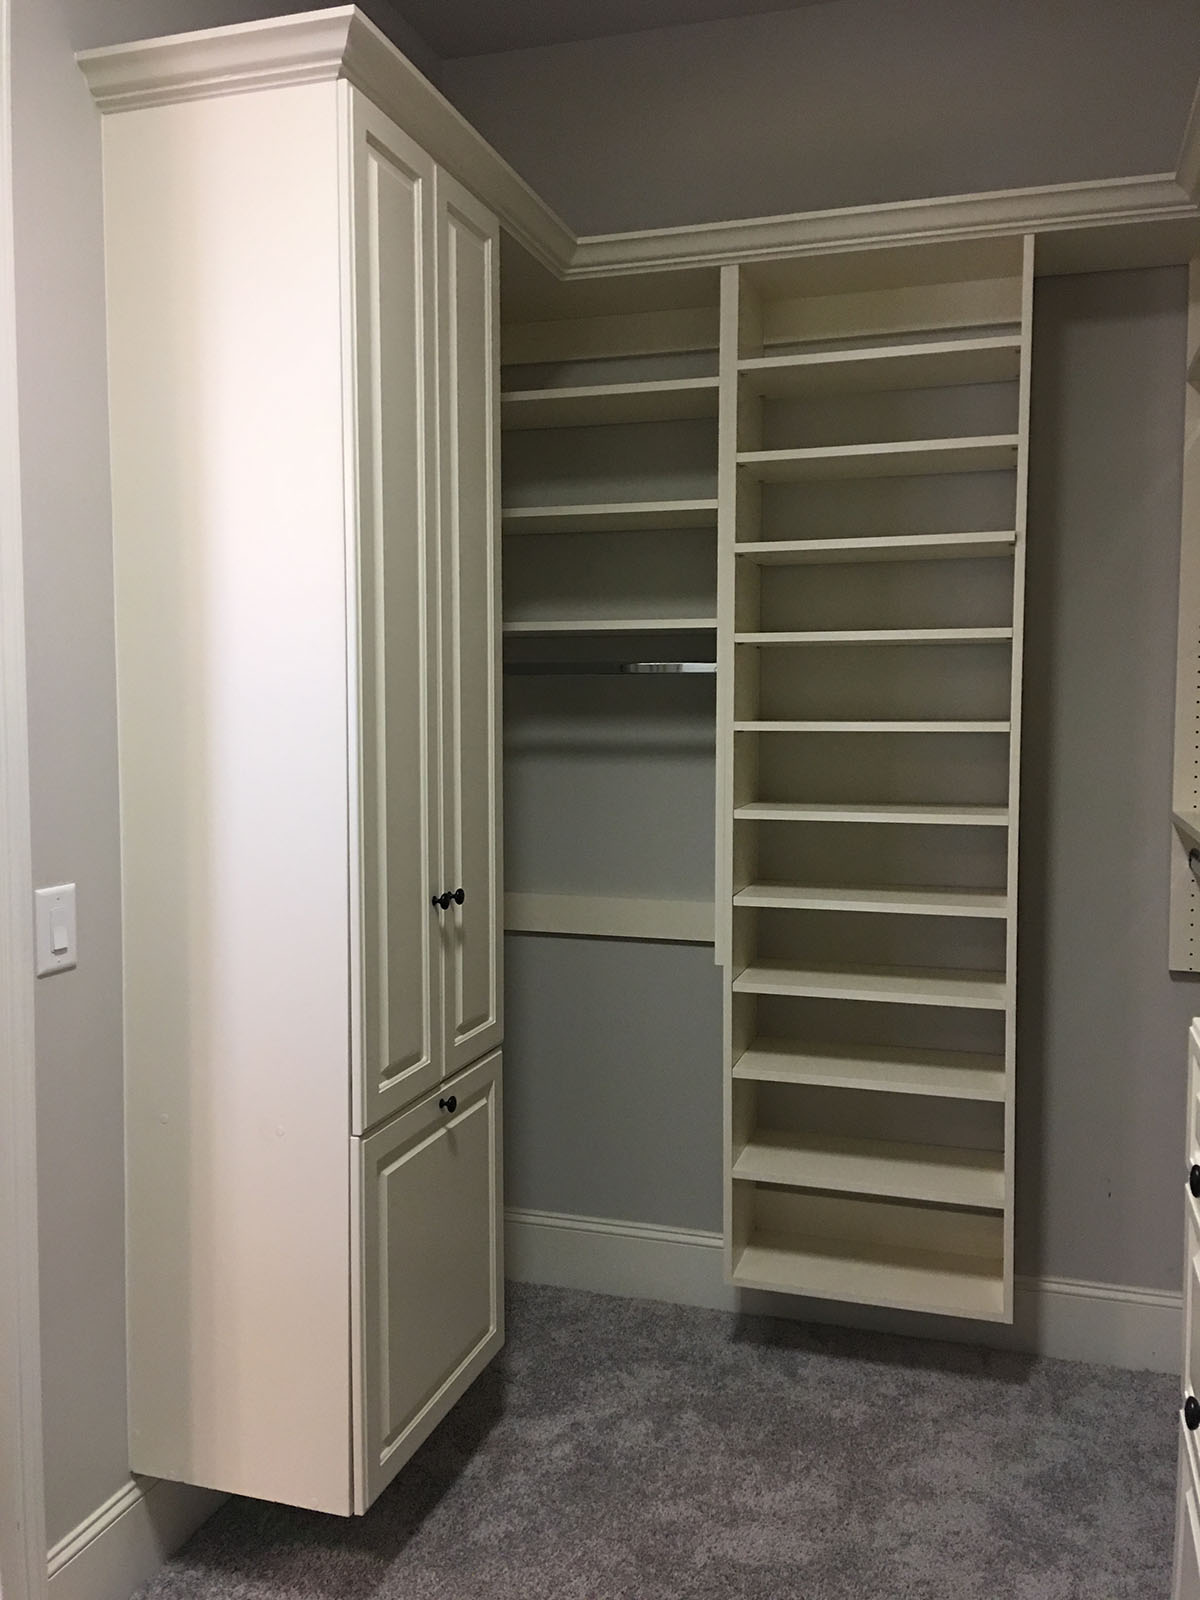 custom closet with shelves